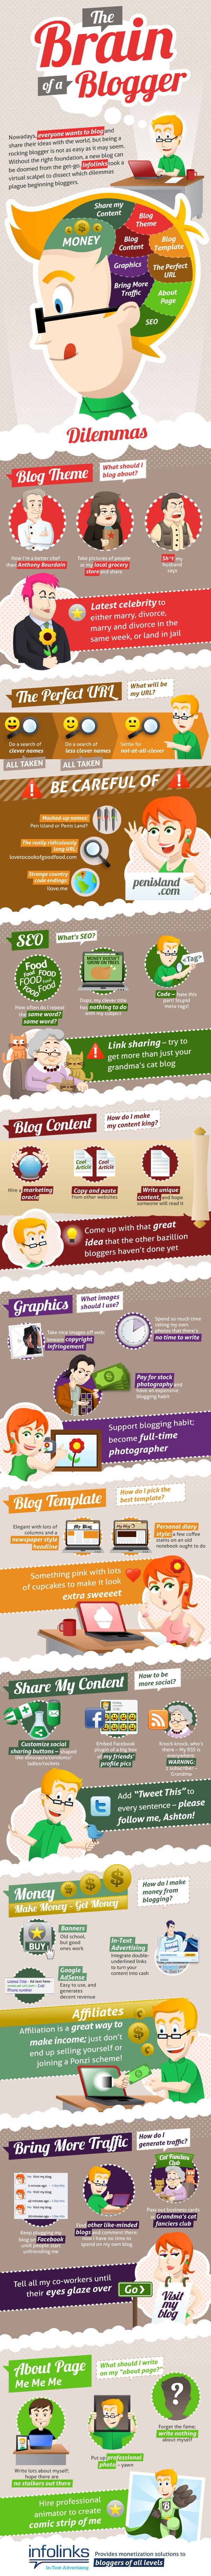 The Way of a Blogger and How He Thinks [INFOGRAPHIC]